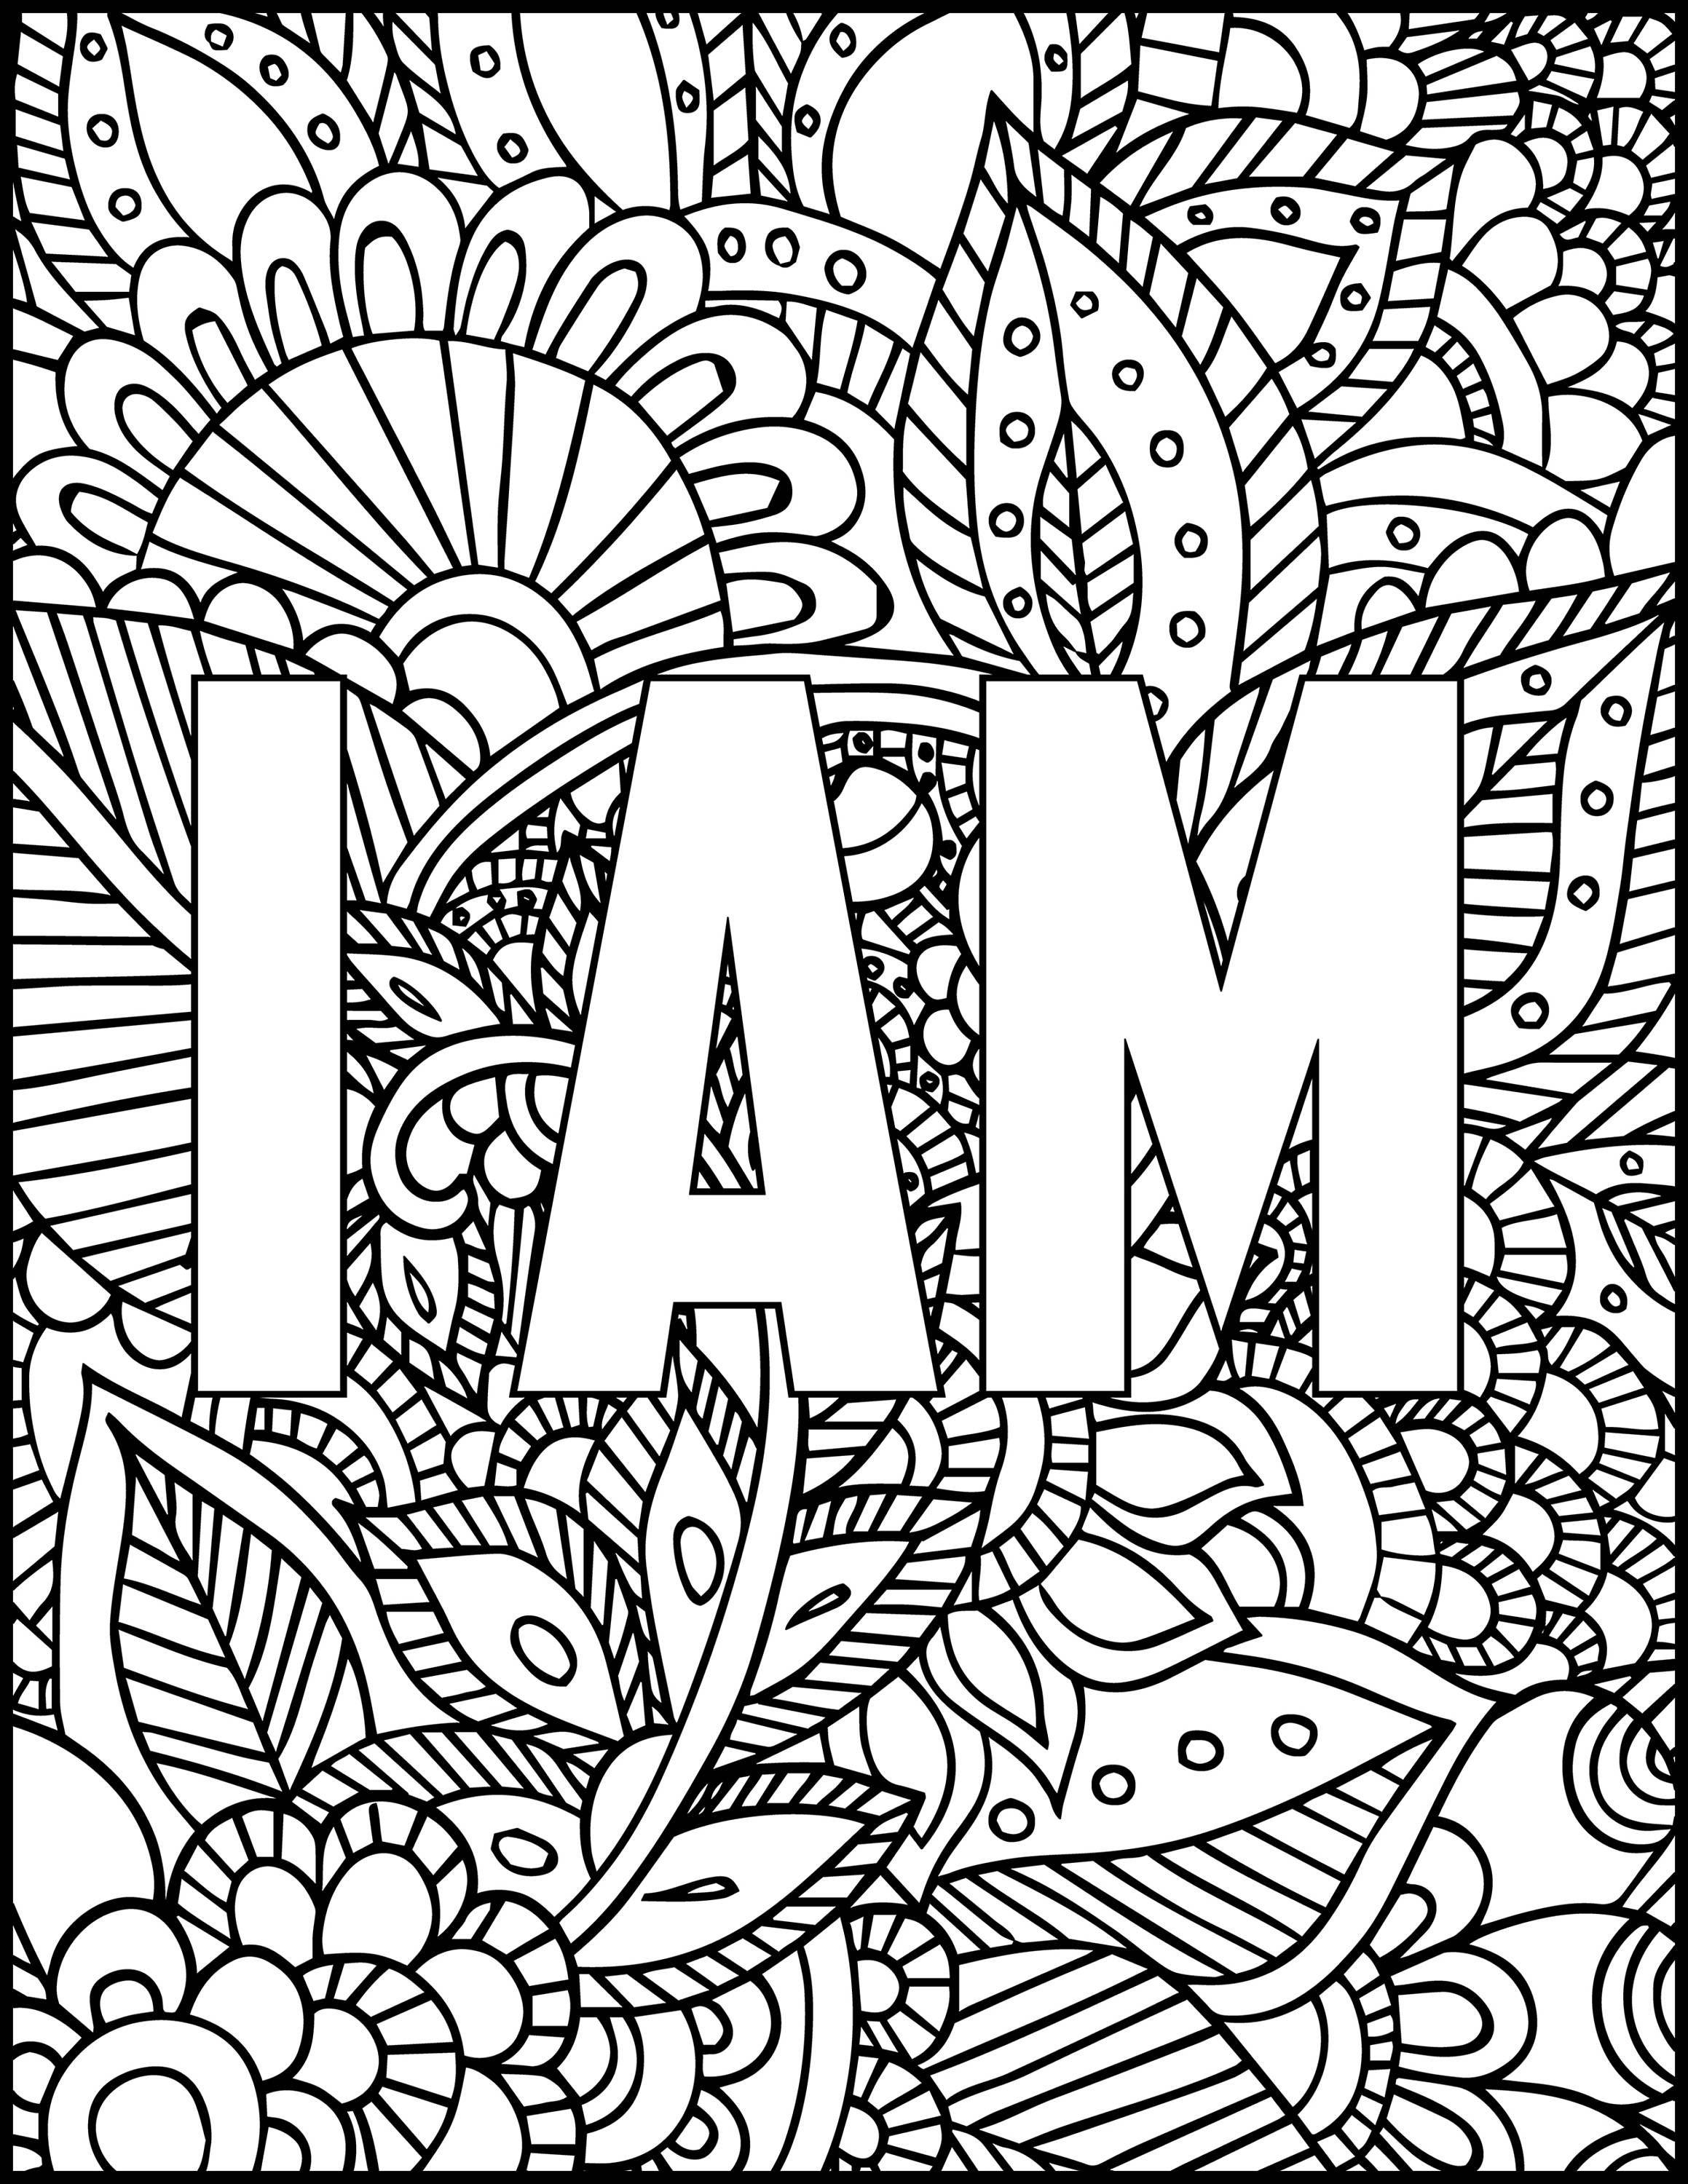 coloring free 40 top free coloring pages we need fun coloring free